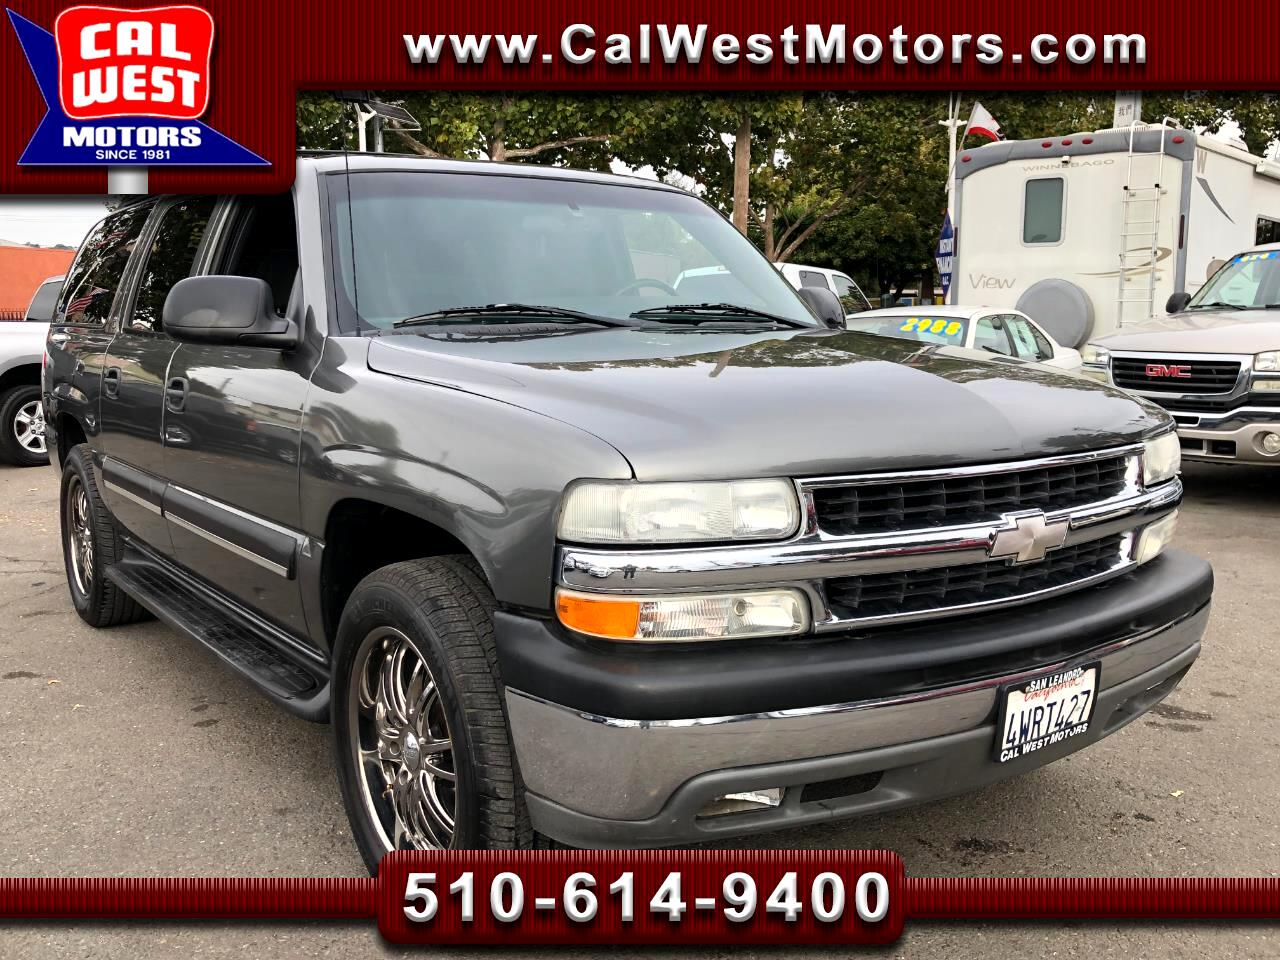 2002 Chevrolet Suburban 1500 LS RWD 9Passngr XtraClean LoMiles XprtlyMntnd